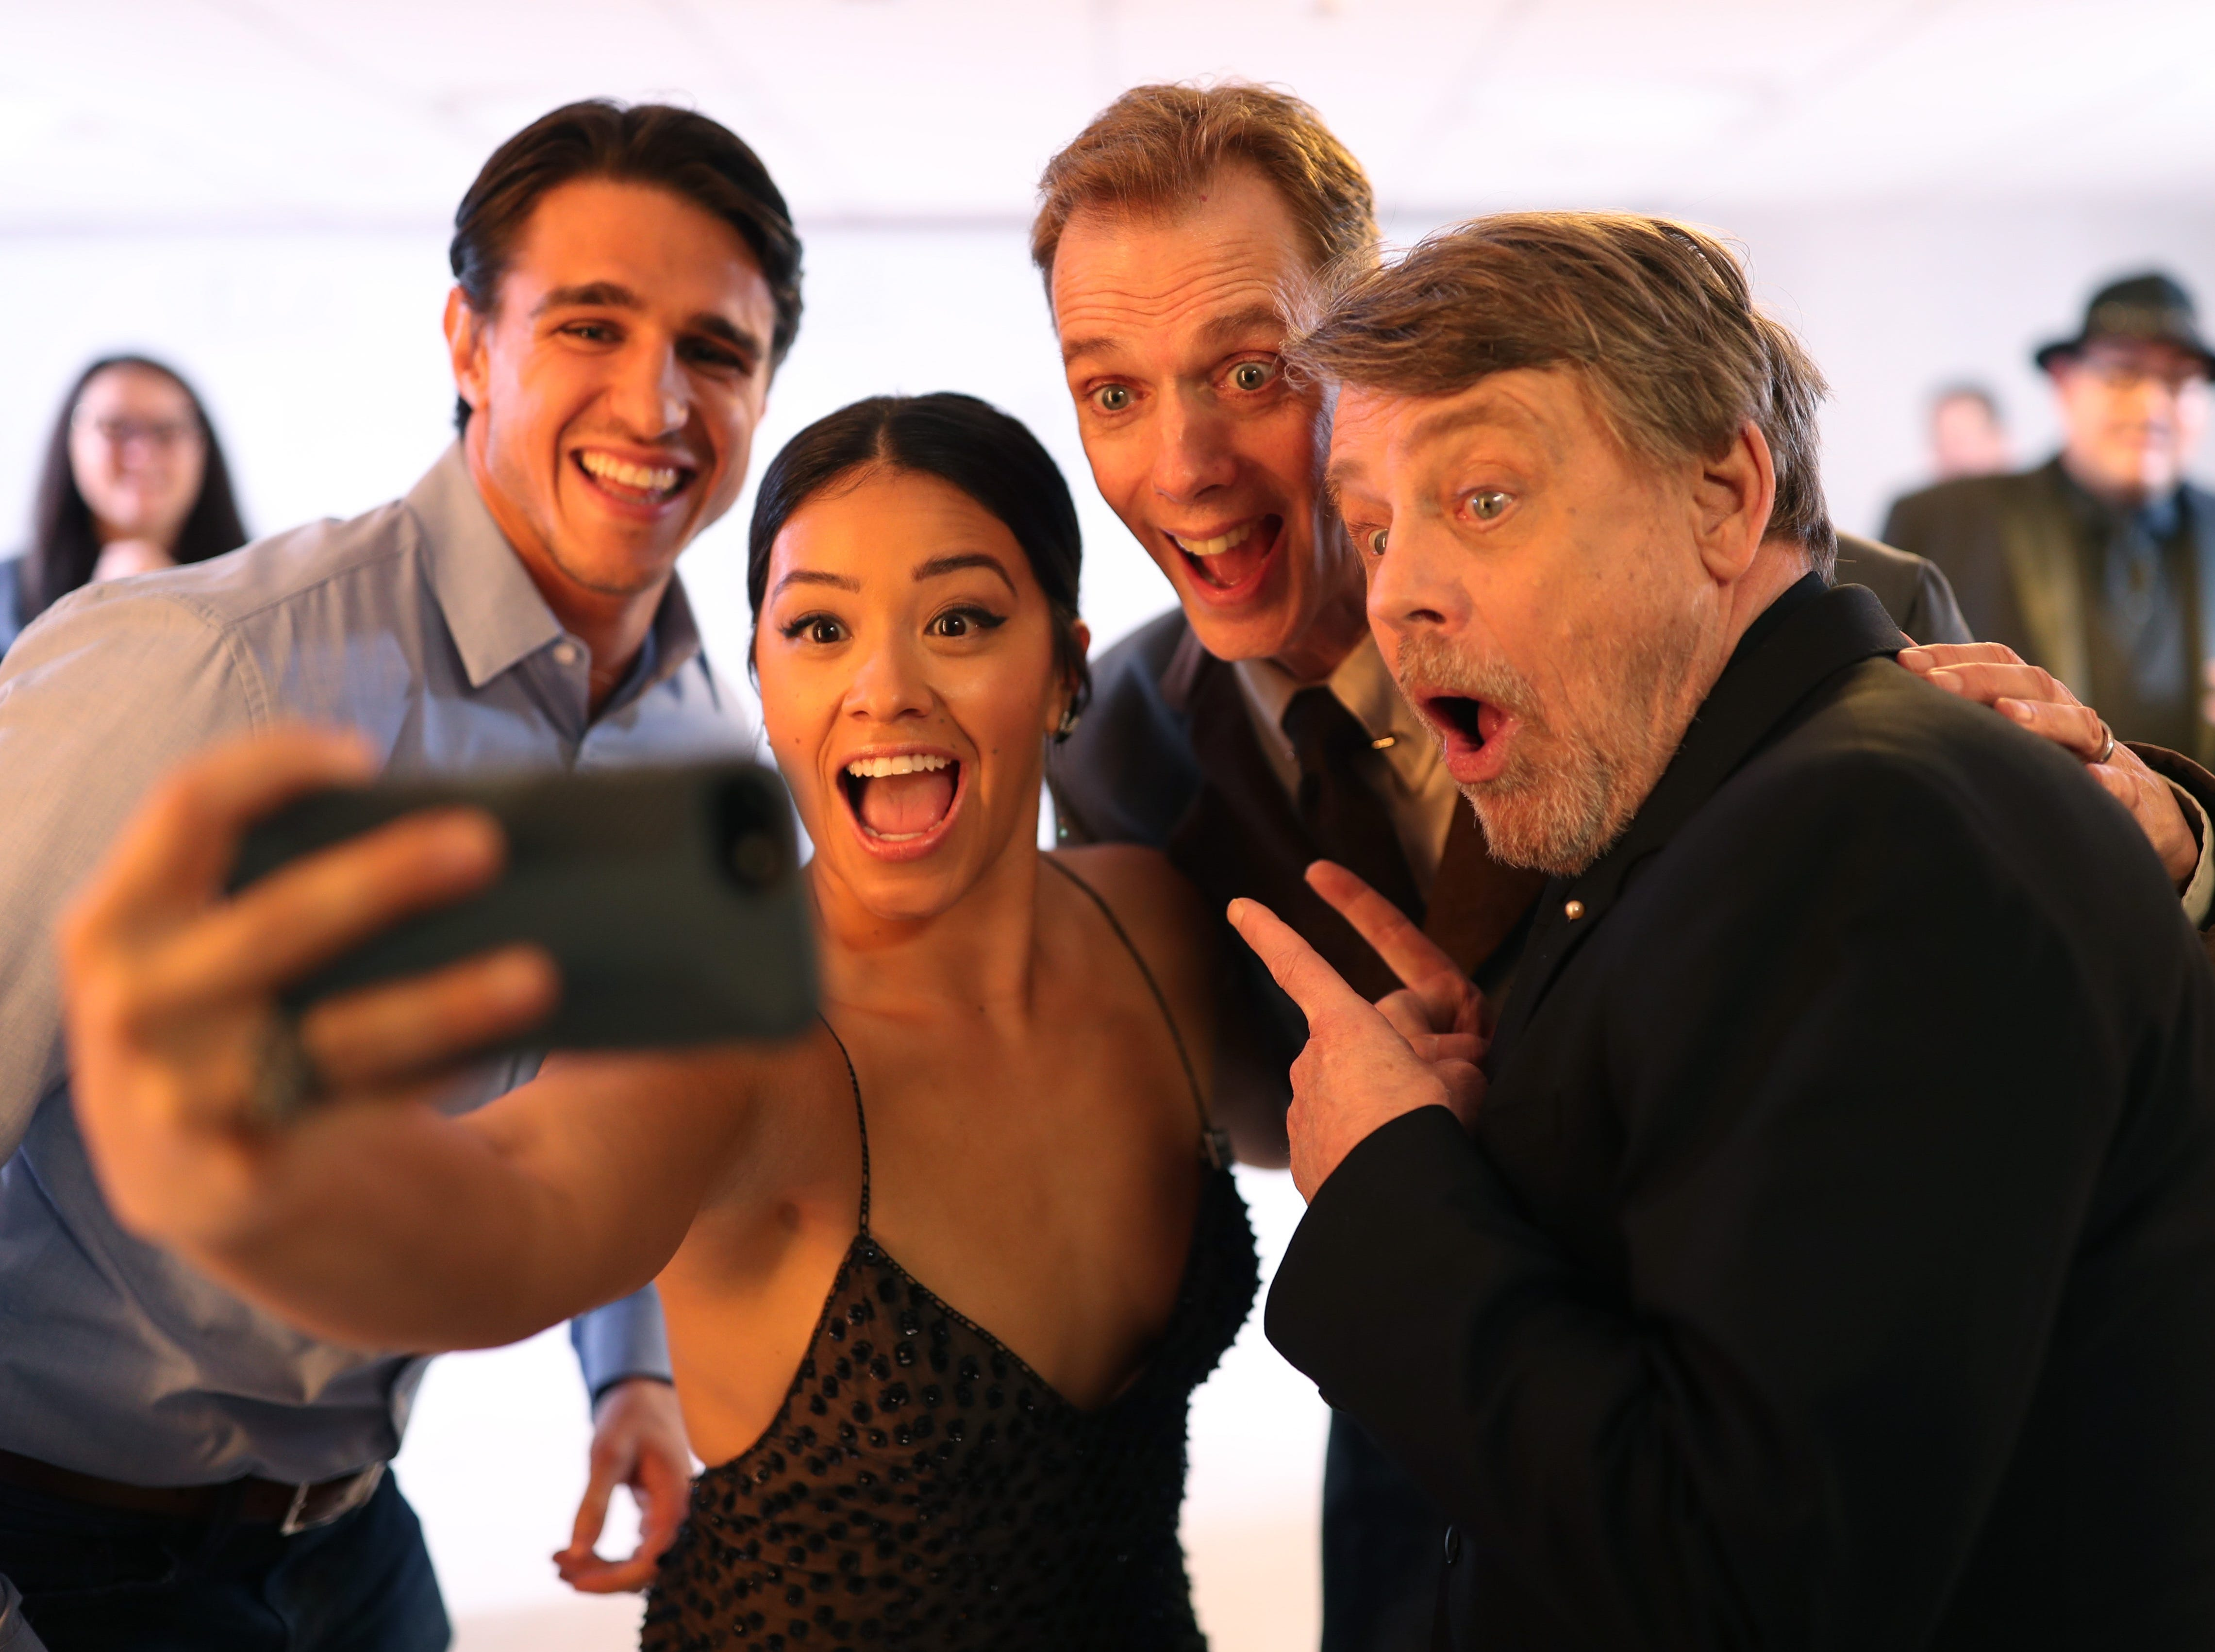 Feb. 20: Joe Locicero, Gina Rodriguez, Doug Jones and Mark Hamill pause for a selfie at the Costume Designers Guild Awards in Beverly Hills, California.